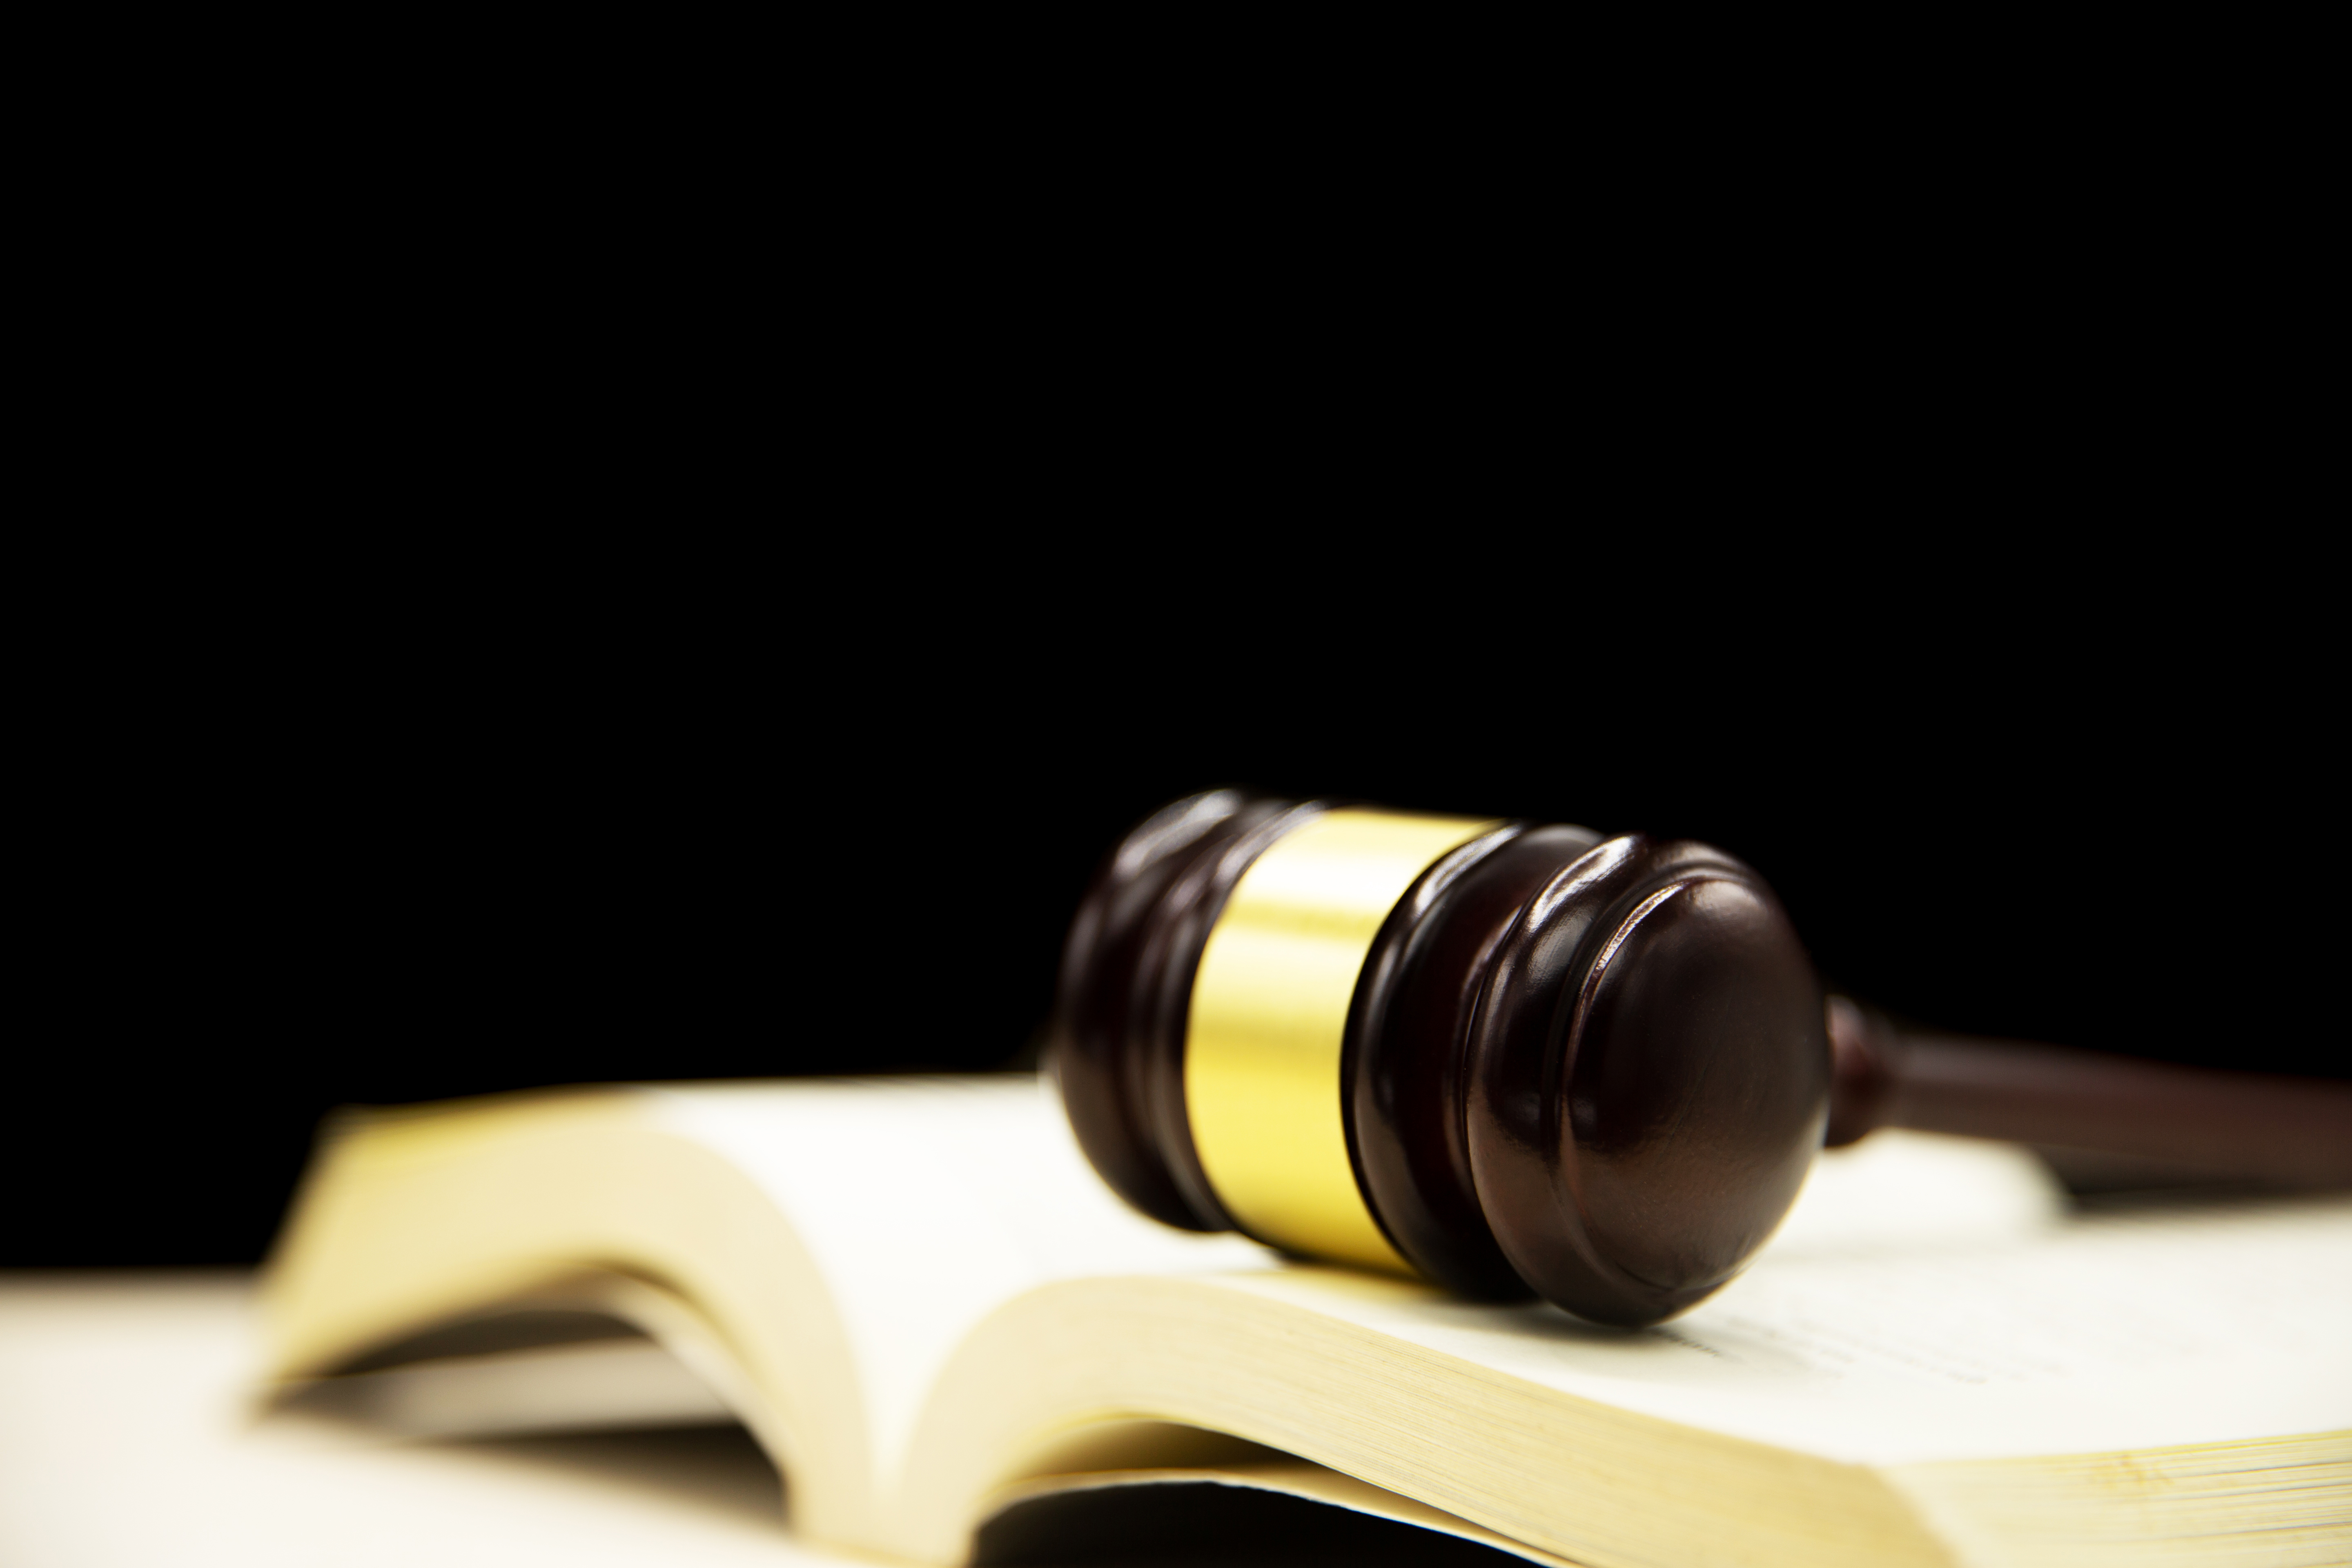 judge-gavel-on-book-and-wooden-table